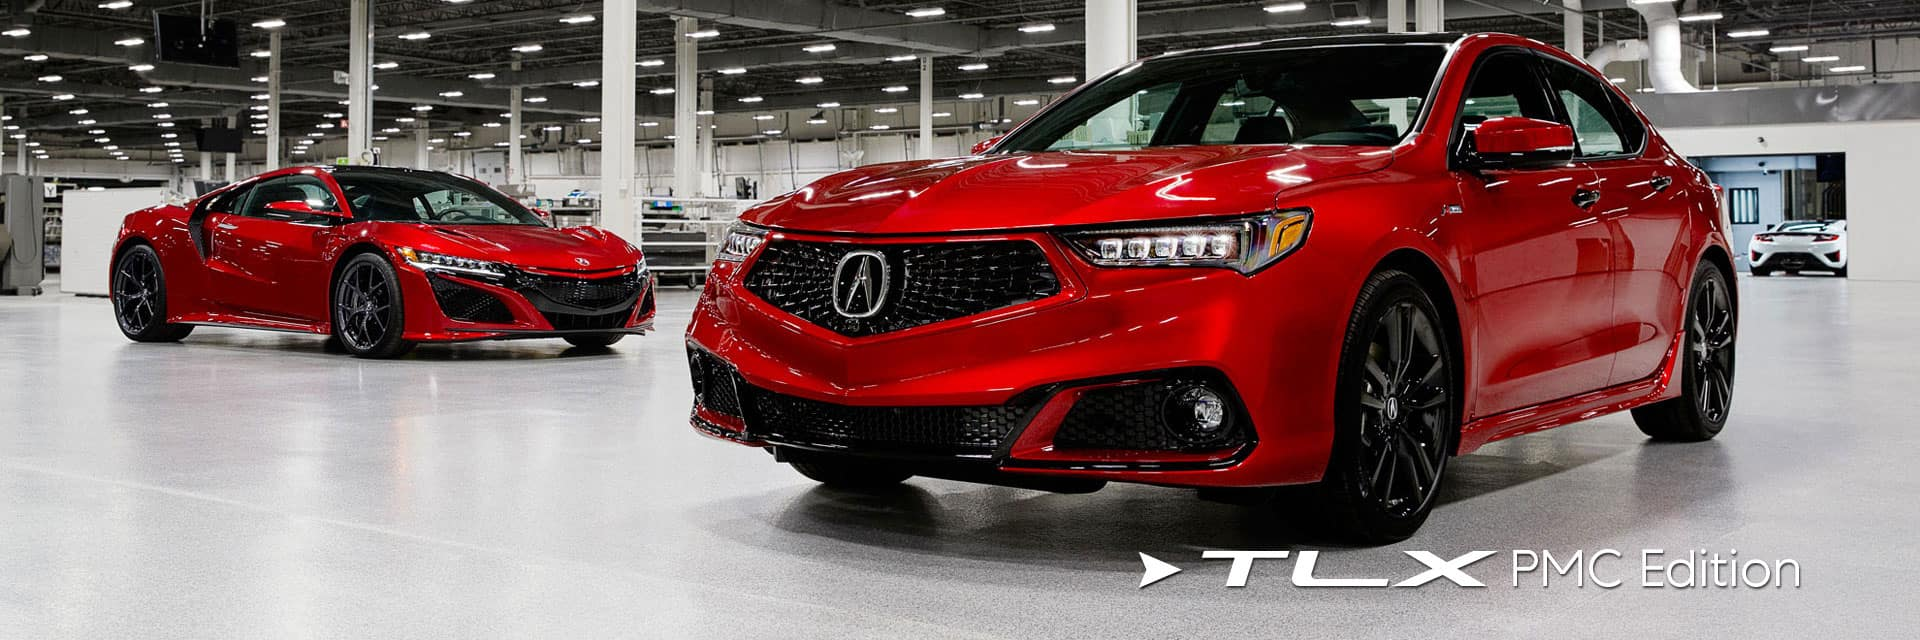 Prime Acura North >> Acura Dealer Nh New And Certfied Pre Owned Cars Sunnyside Acura